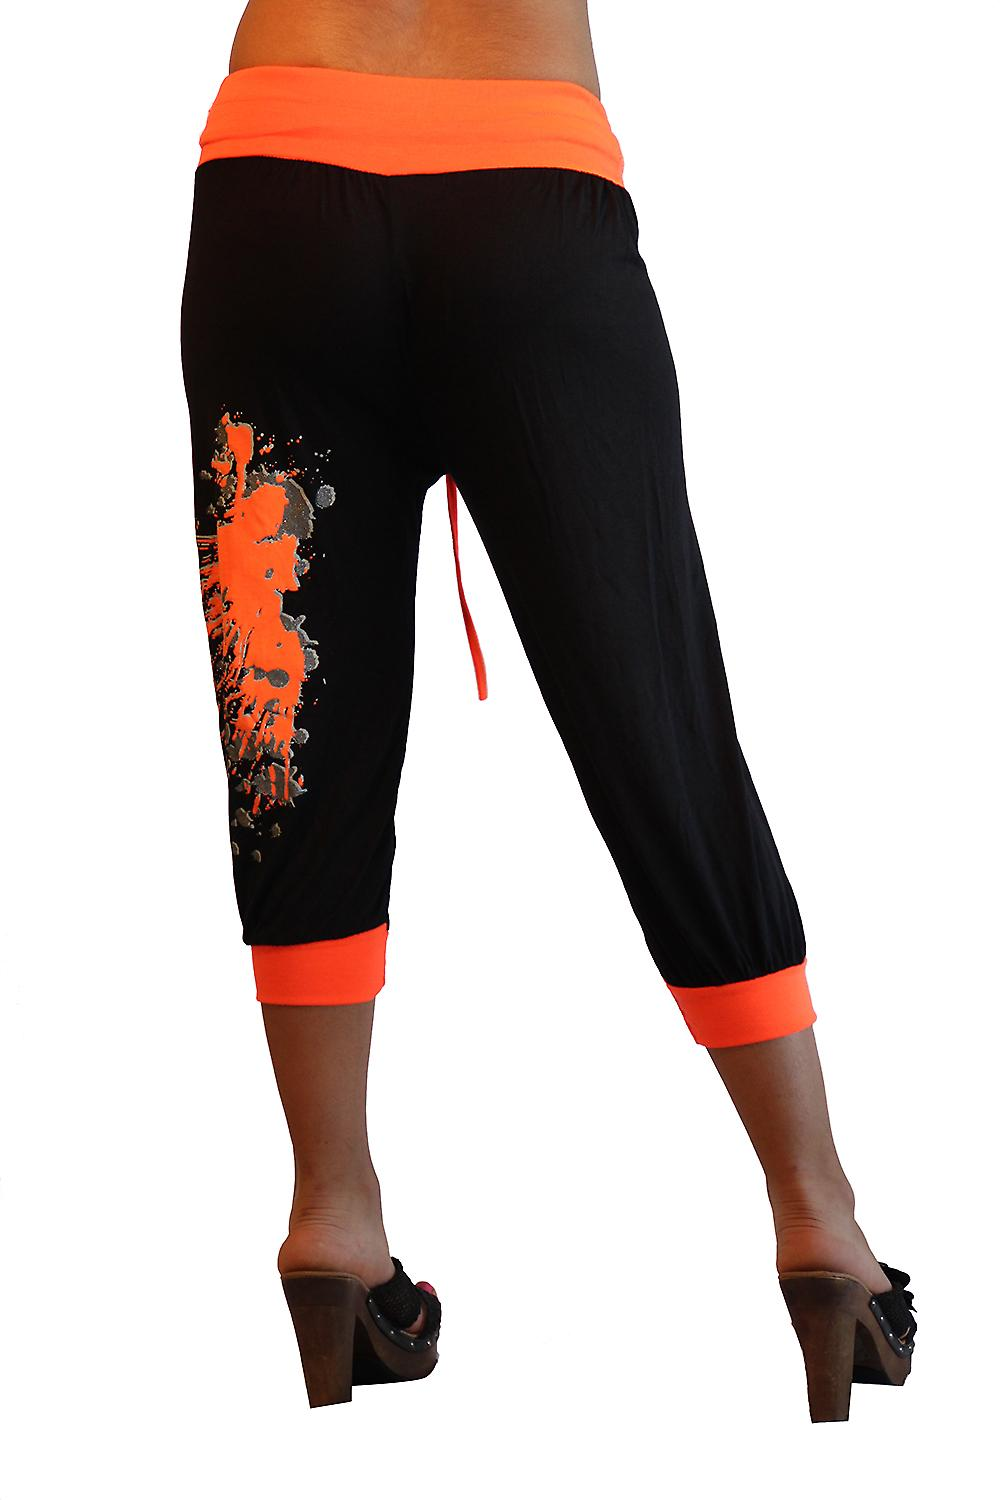 Waooh - Mode - Pantalon jogging fluo